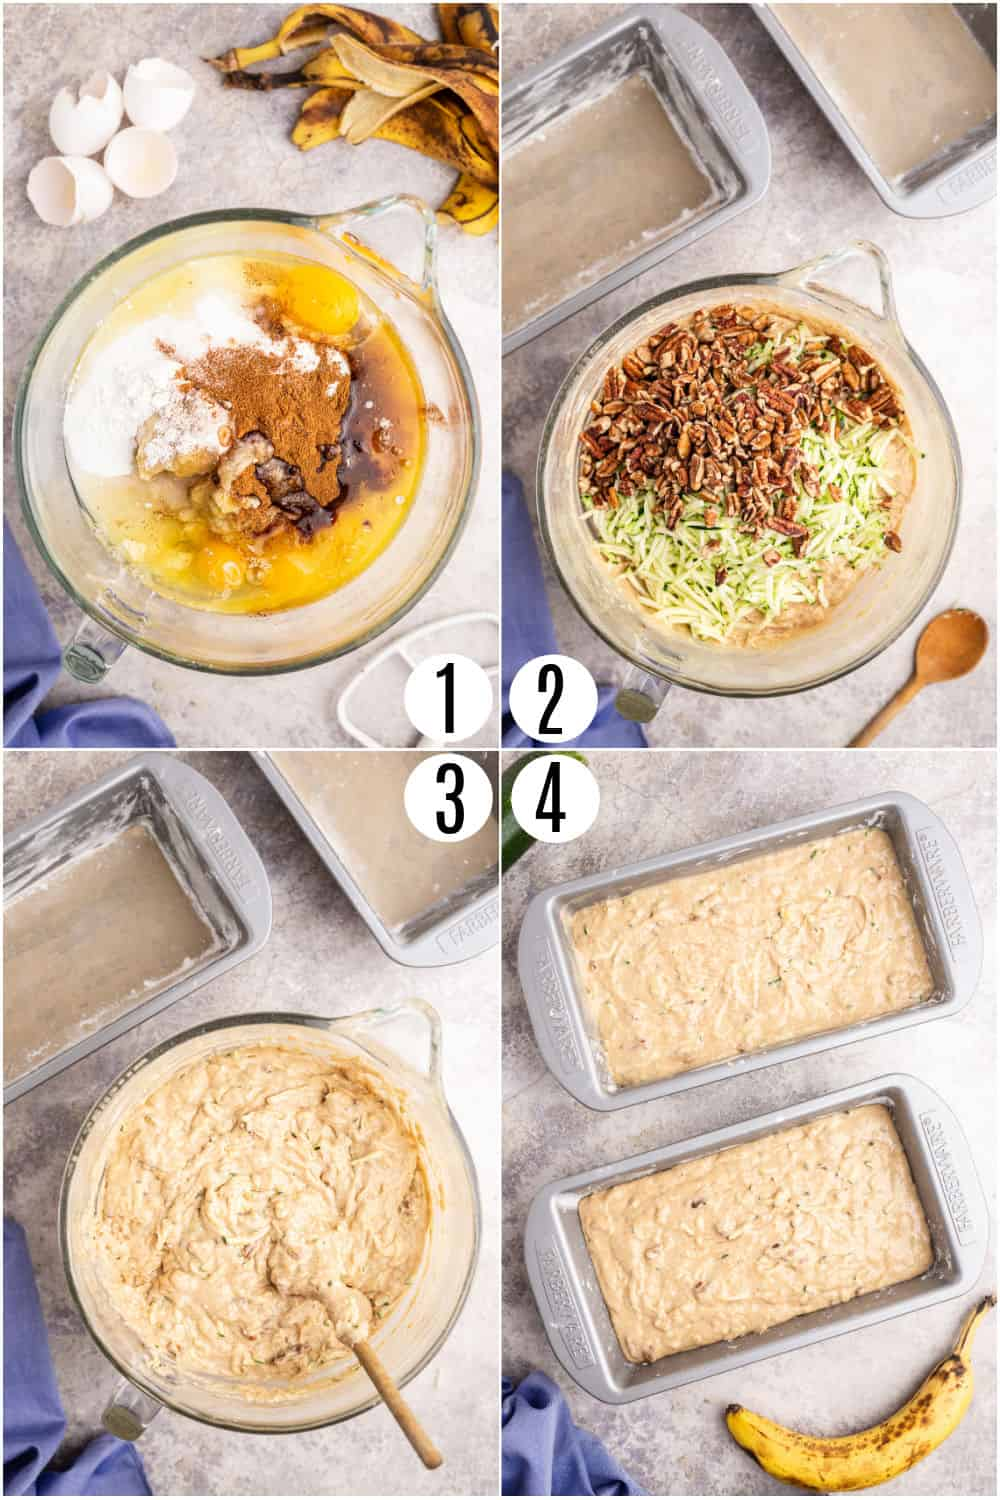 Step by step photos showing how to make banana zucchini bread.